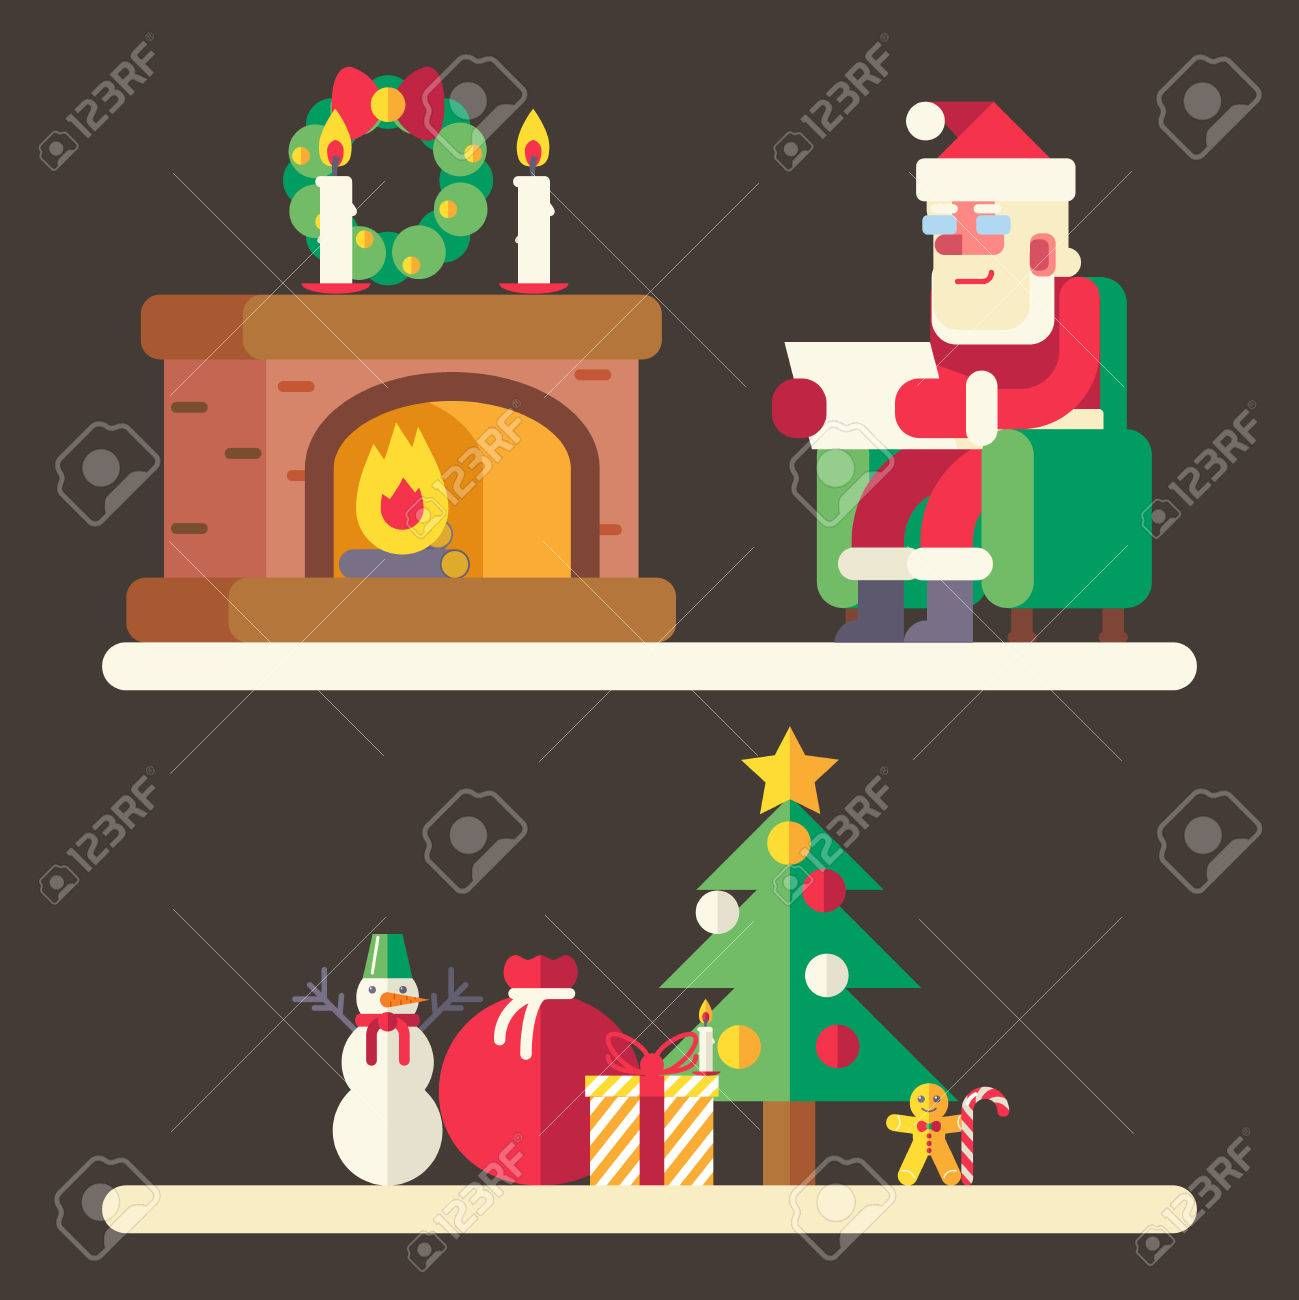 Santa claus reading mail list new year accessories icons greeting santa claus reading mail list new year accessories icons greeting card design concept template vector illustration kristyandbryce Gallery